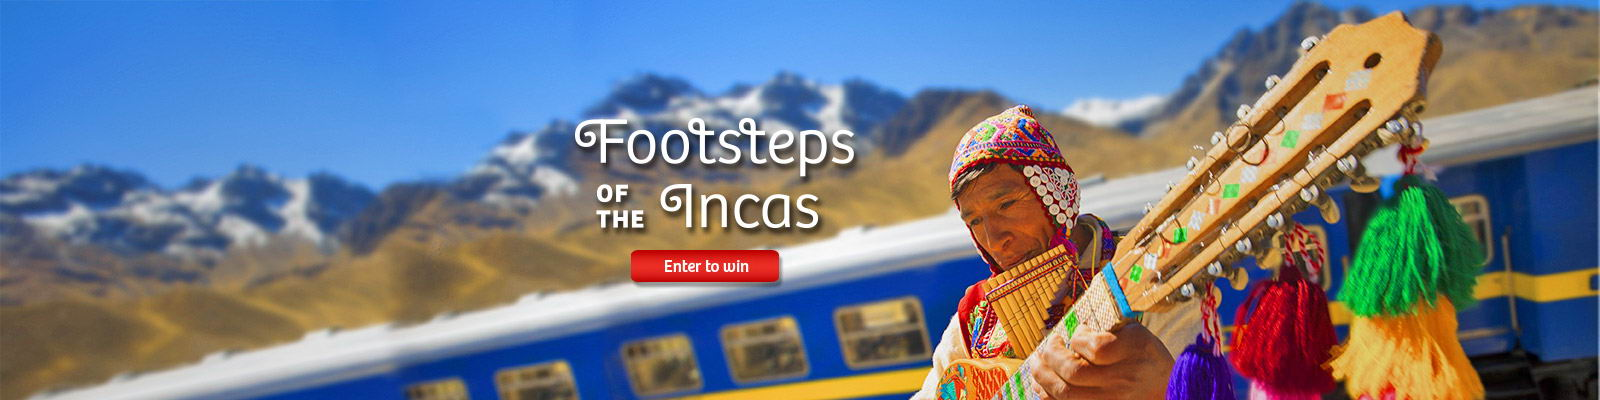 Footsteps of the incas